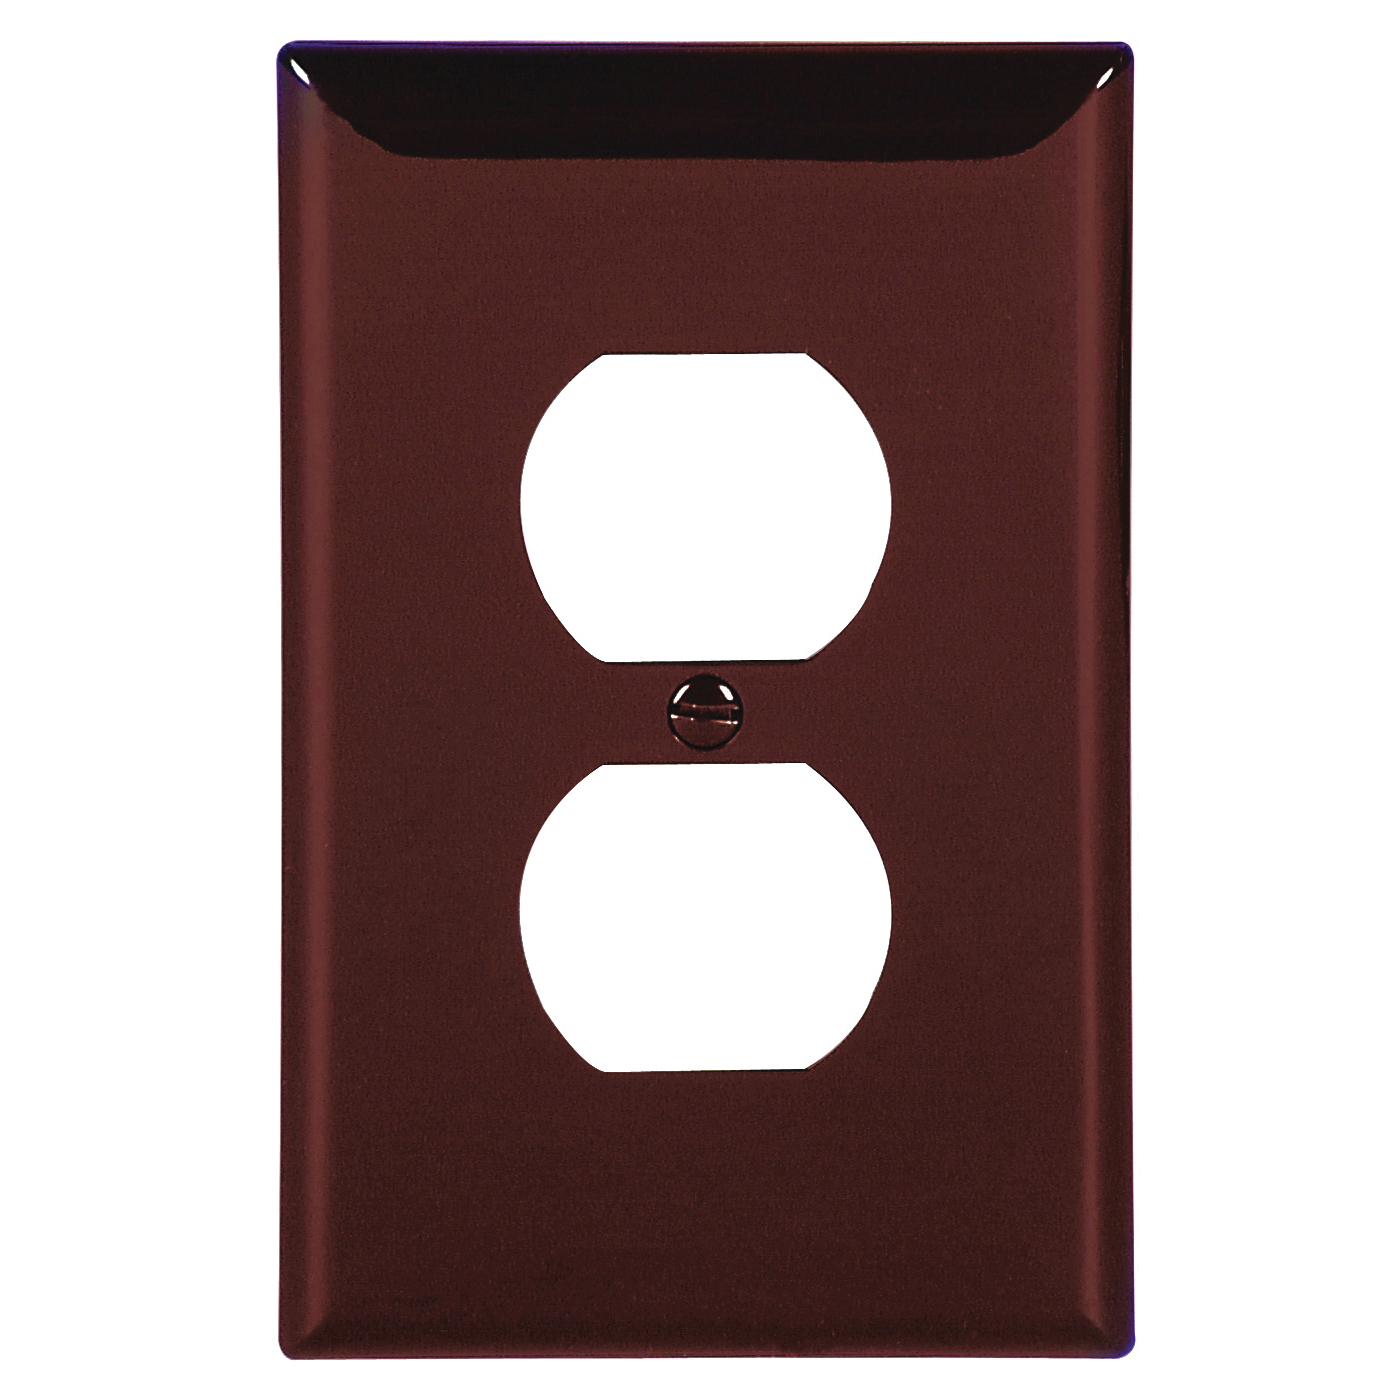 Picture of Eaton Wiring Devices 5132B-BOX Duplex Receptacle Wallplate, 4-1/2 in L, 2-3/4 in W, 1-Gang, Nylon, Brown